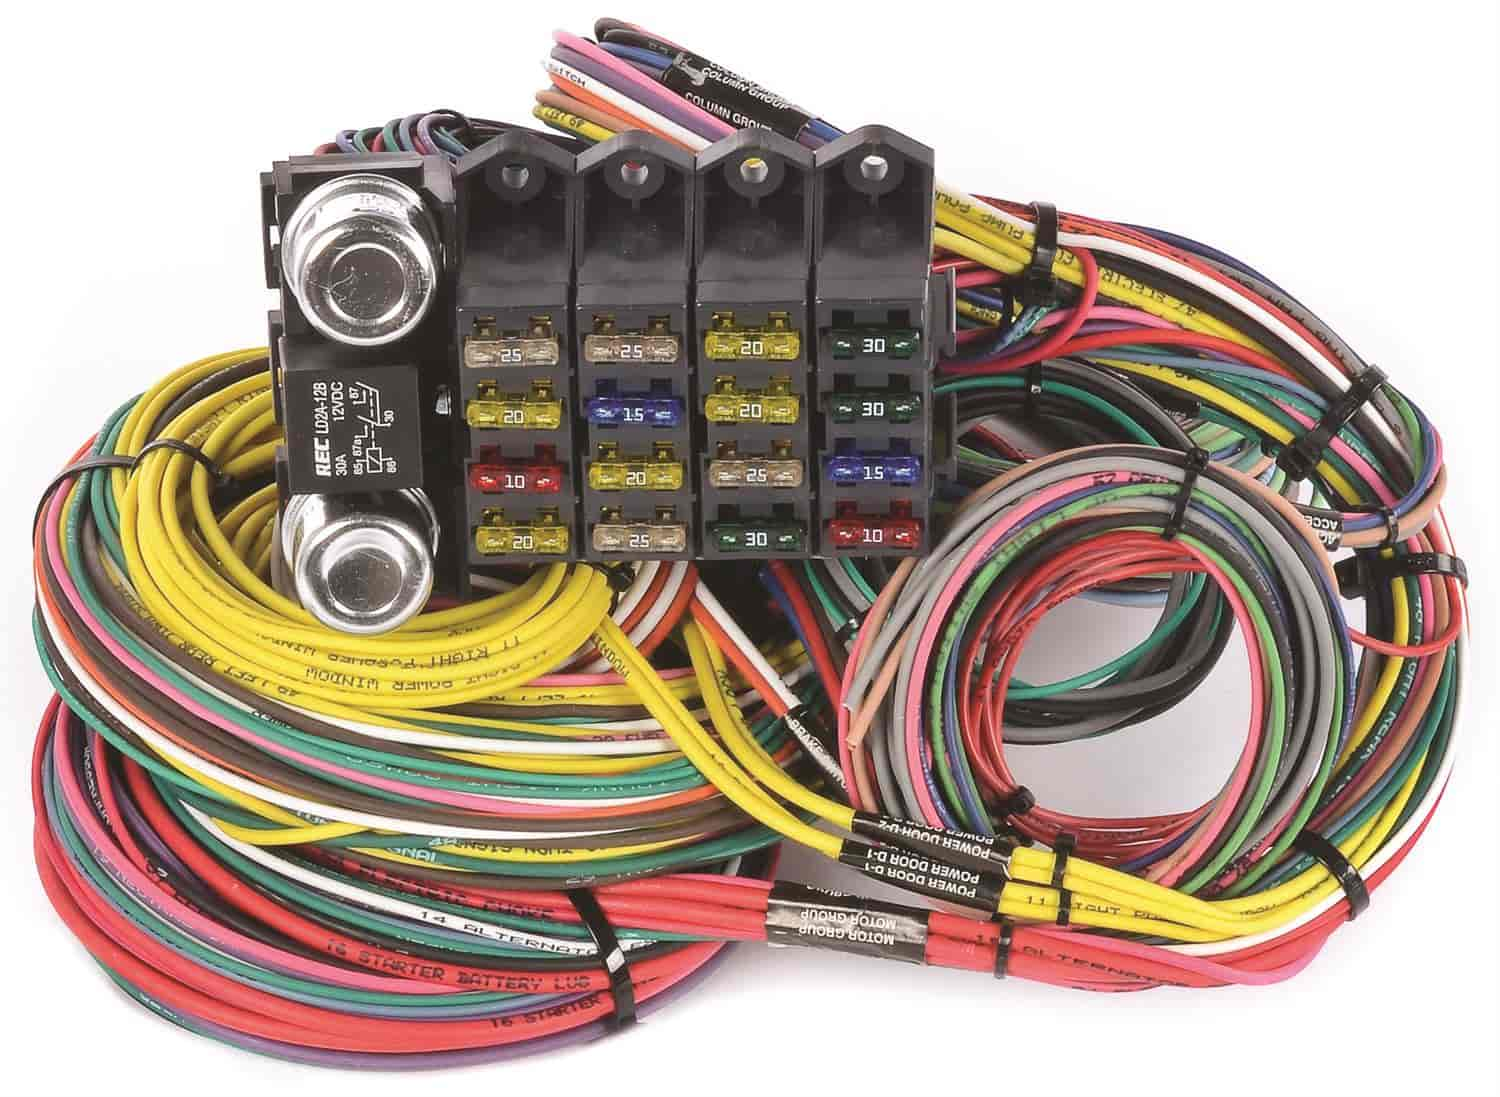 555 10405 jegs performance products 10405 universal wiring harness, 20 Circuit Breakers Types at panicattacktreatment.co